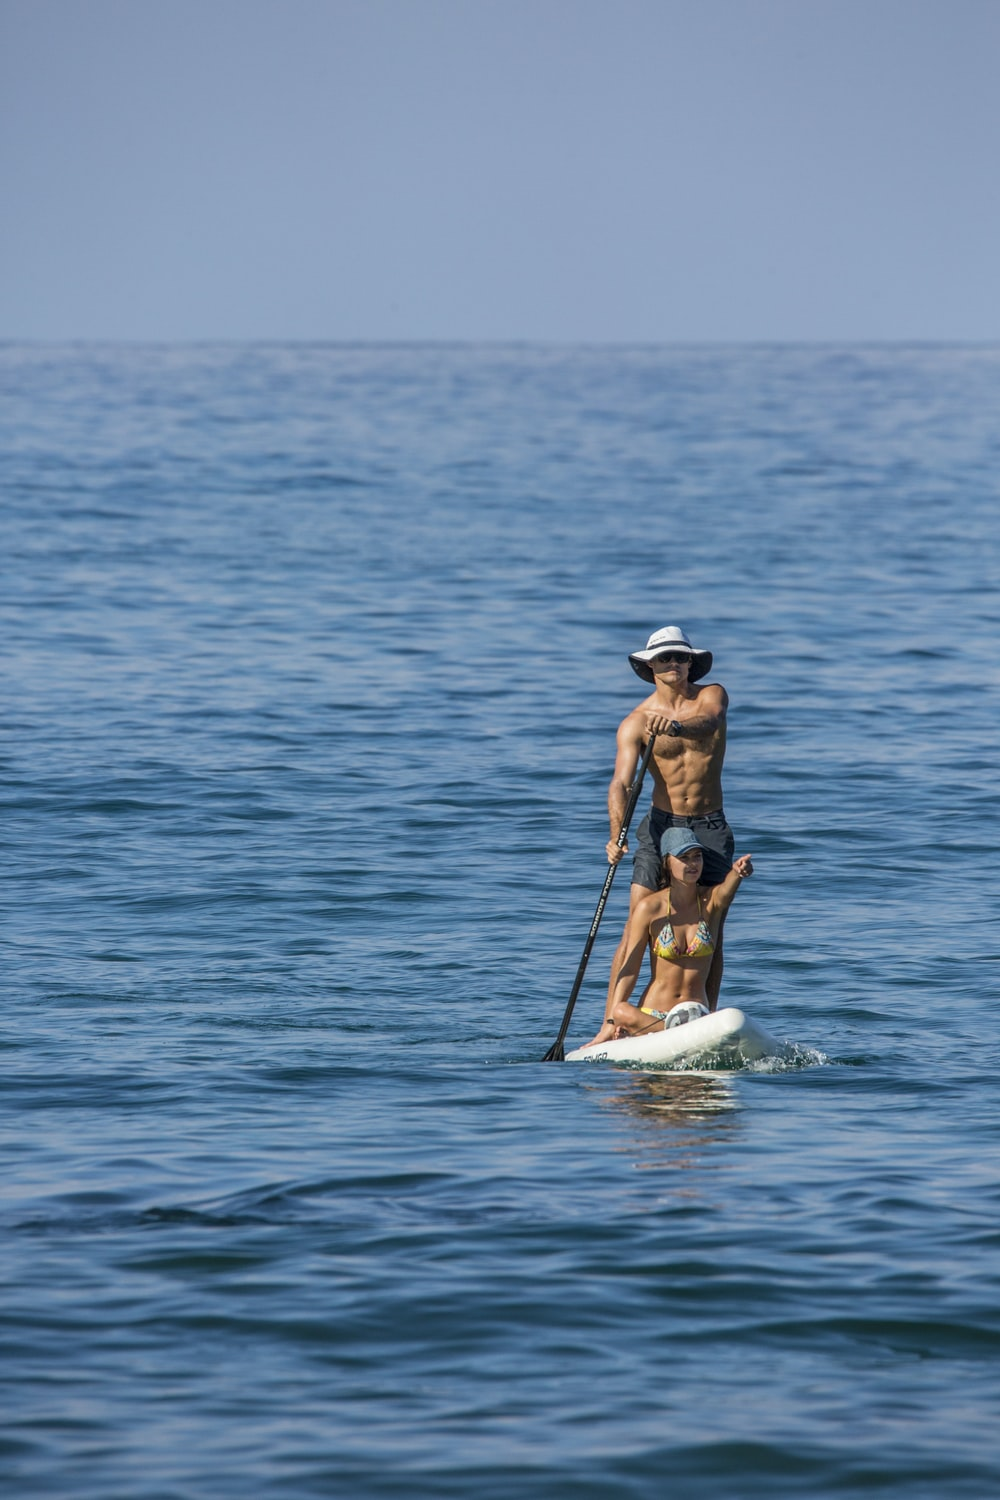 woman in blue bikini on white surfboard in the middle of sea during daytime